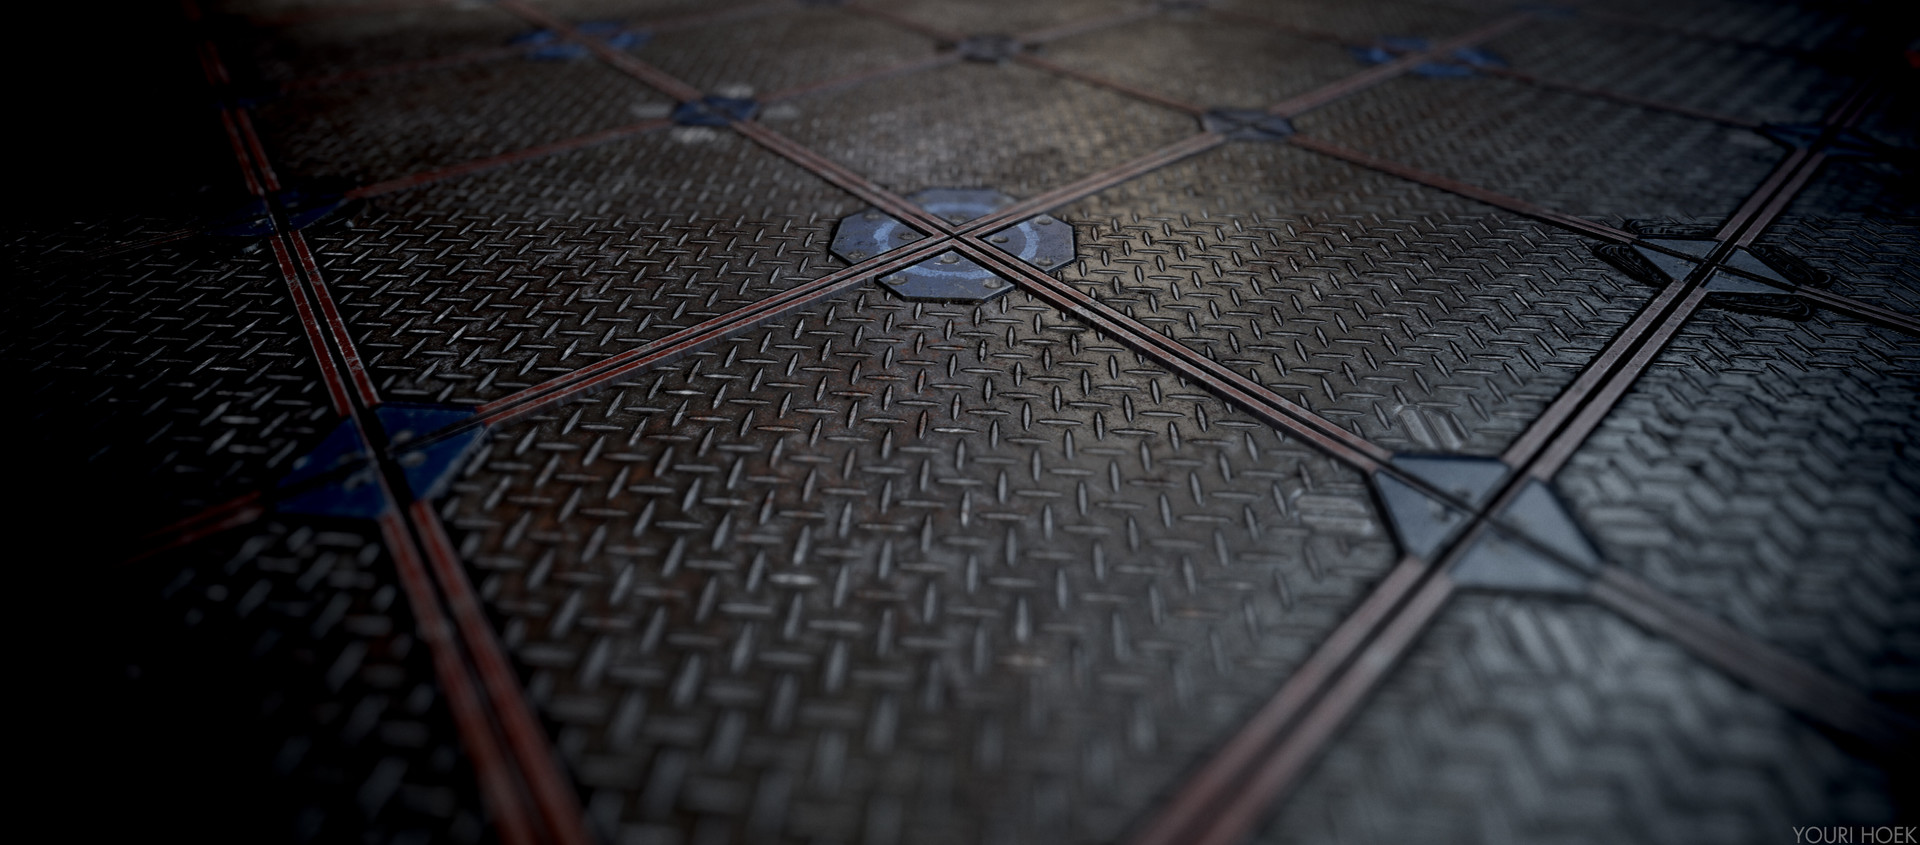 ArtStation - Sci-fi floor tiles, Youri Hoek